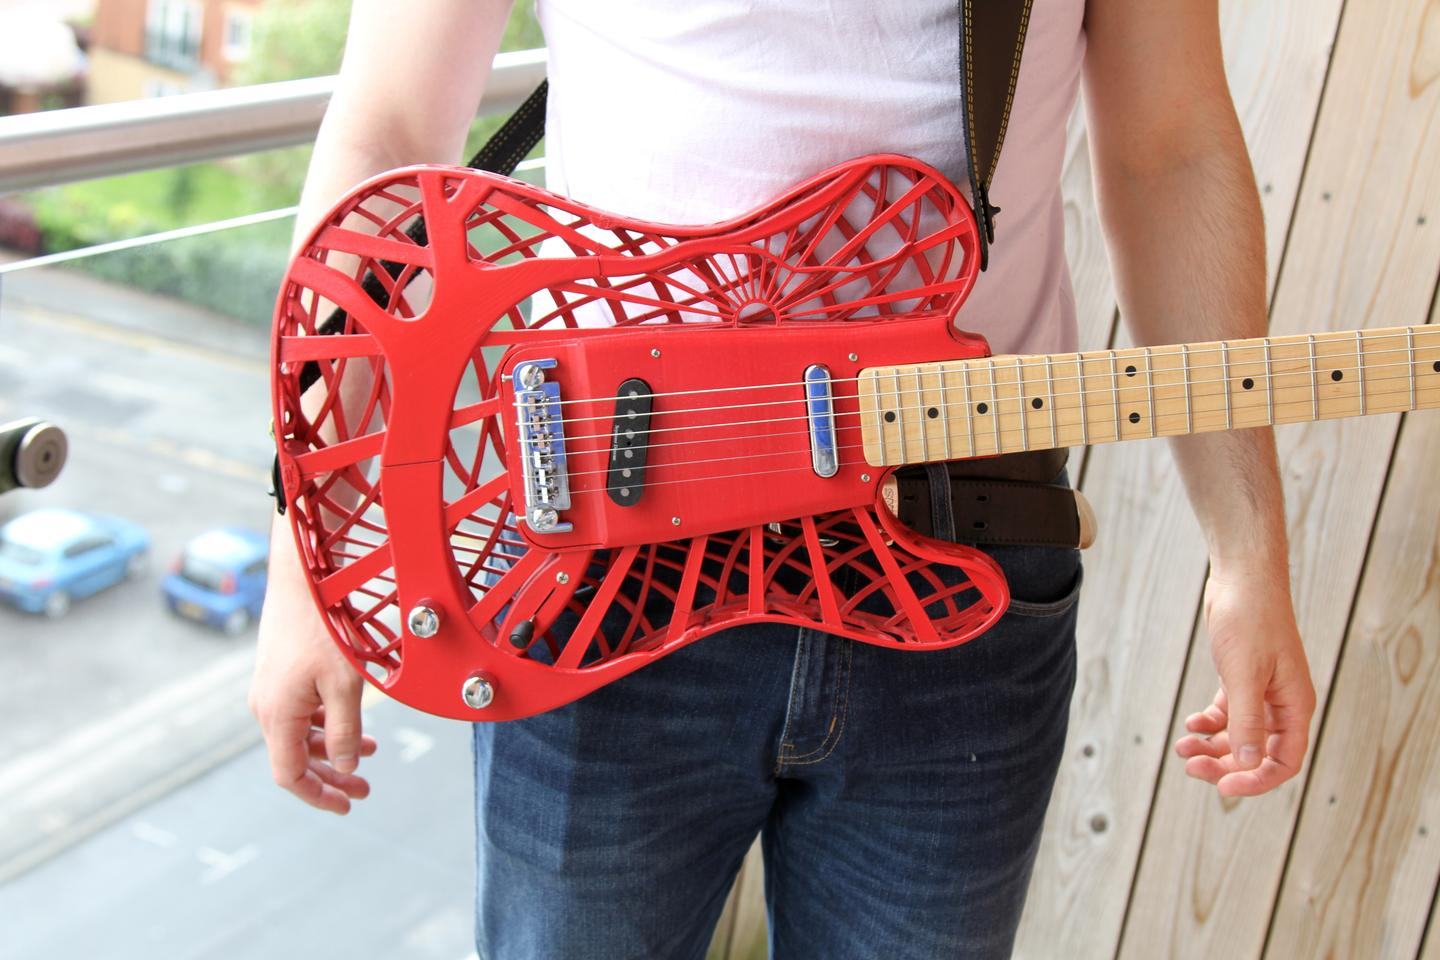 The Sunrise 3D-printed guitar is one of three stock models available from Customuse